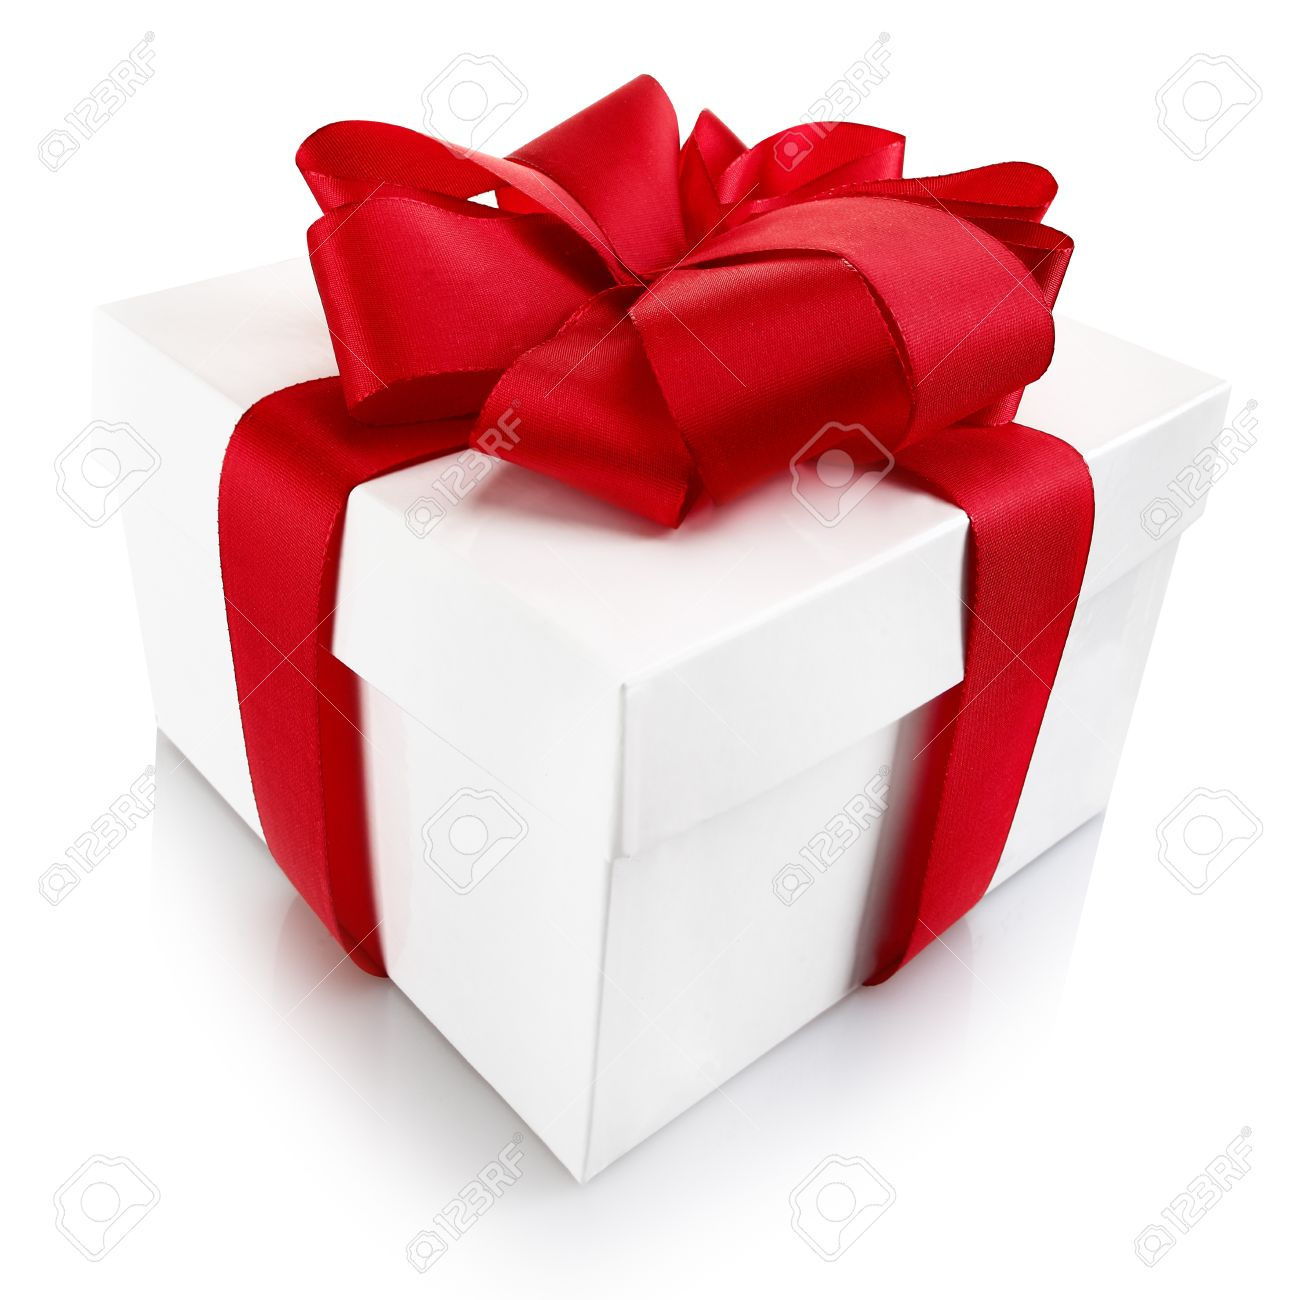 decorative christmas or valentine gift square white cardboard box with lid tied with a beautiful